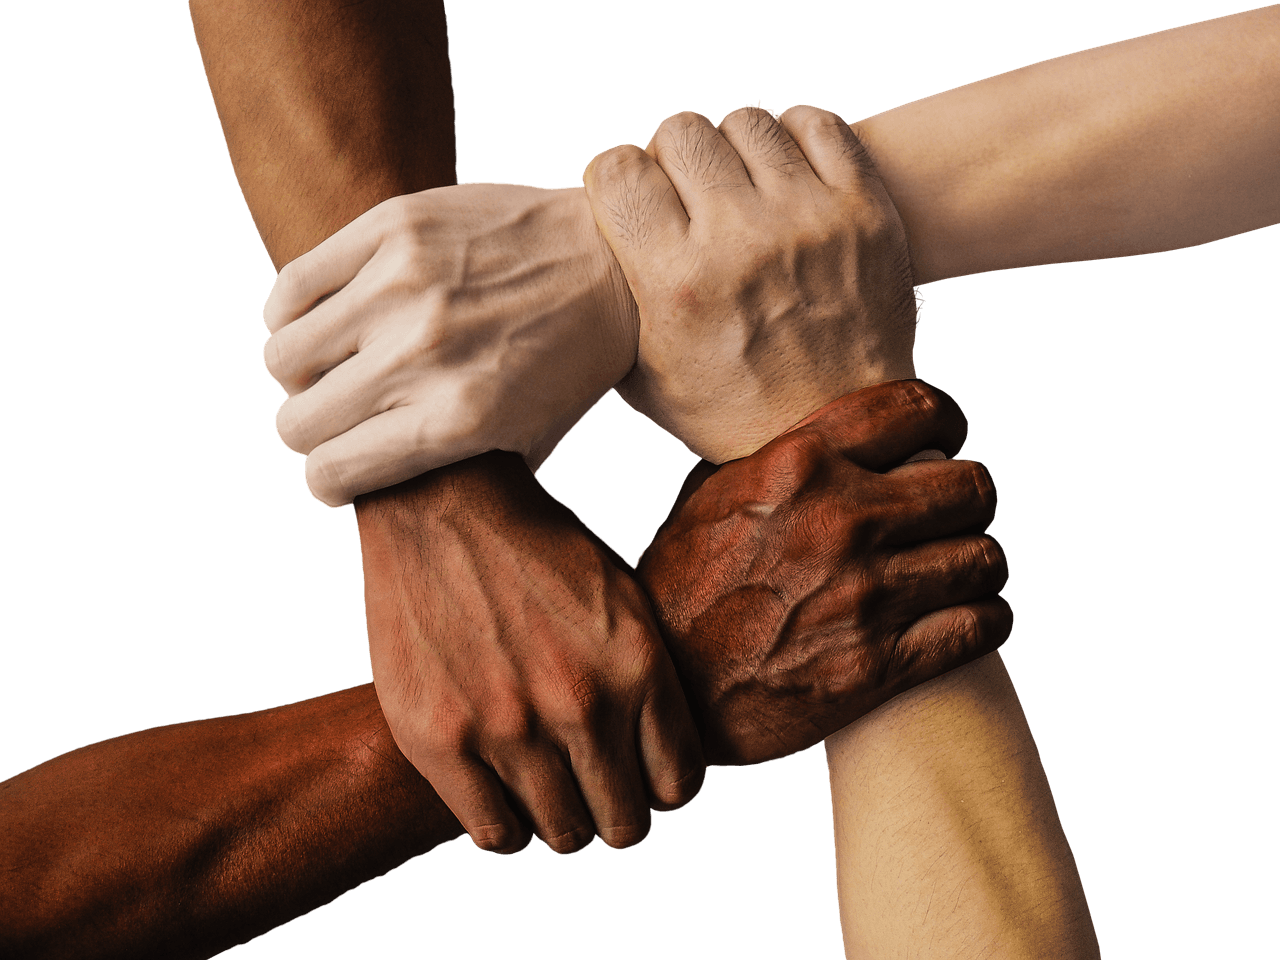 The Best Ways To Help Victims Of The New Zealand Massacre